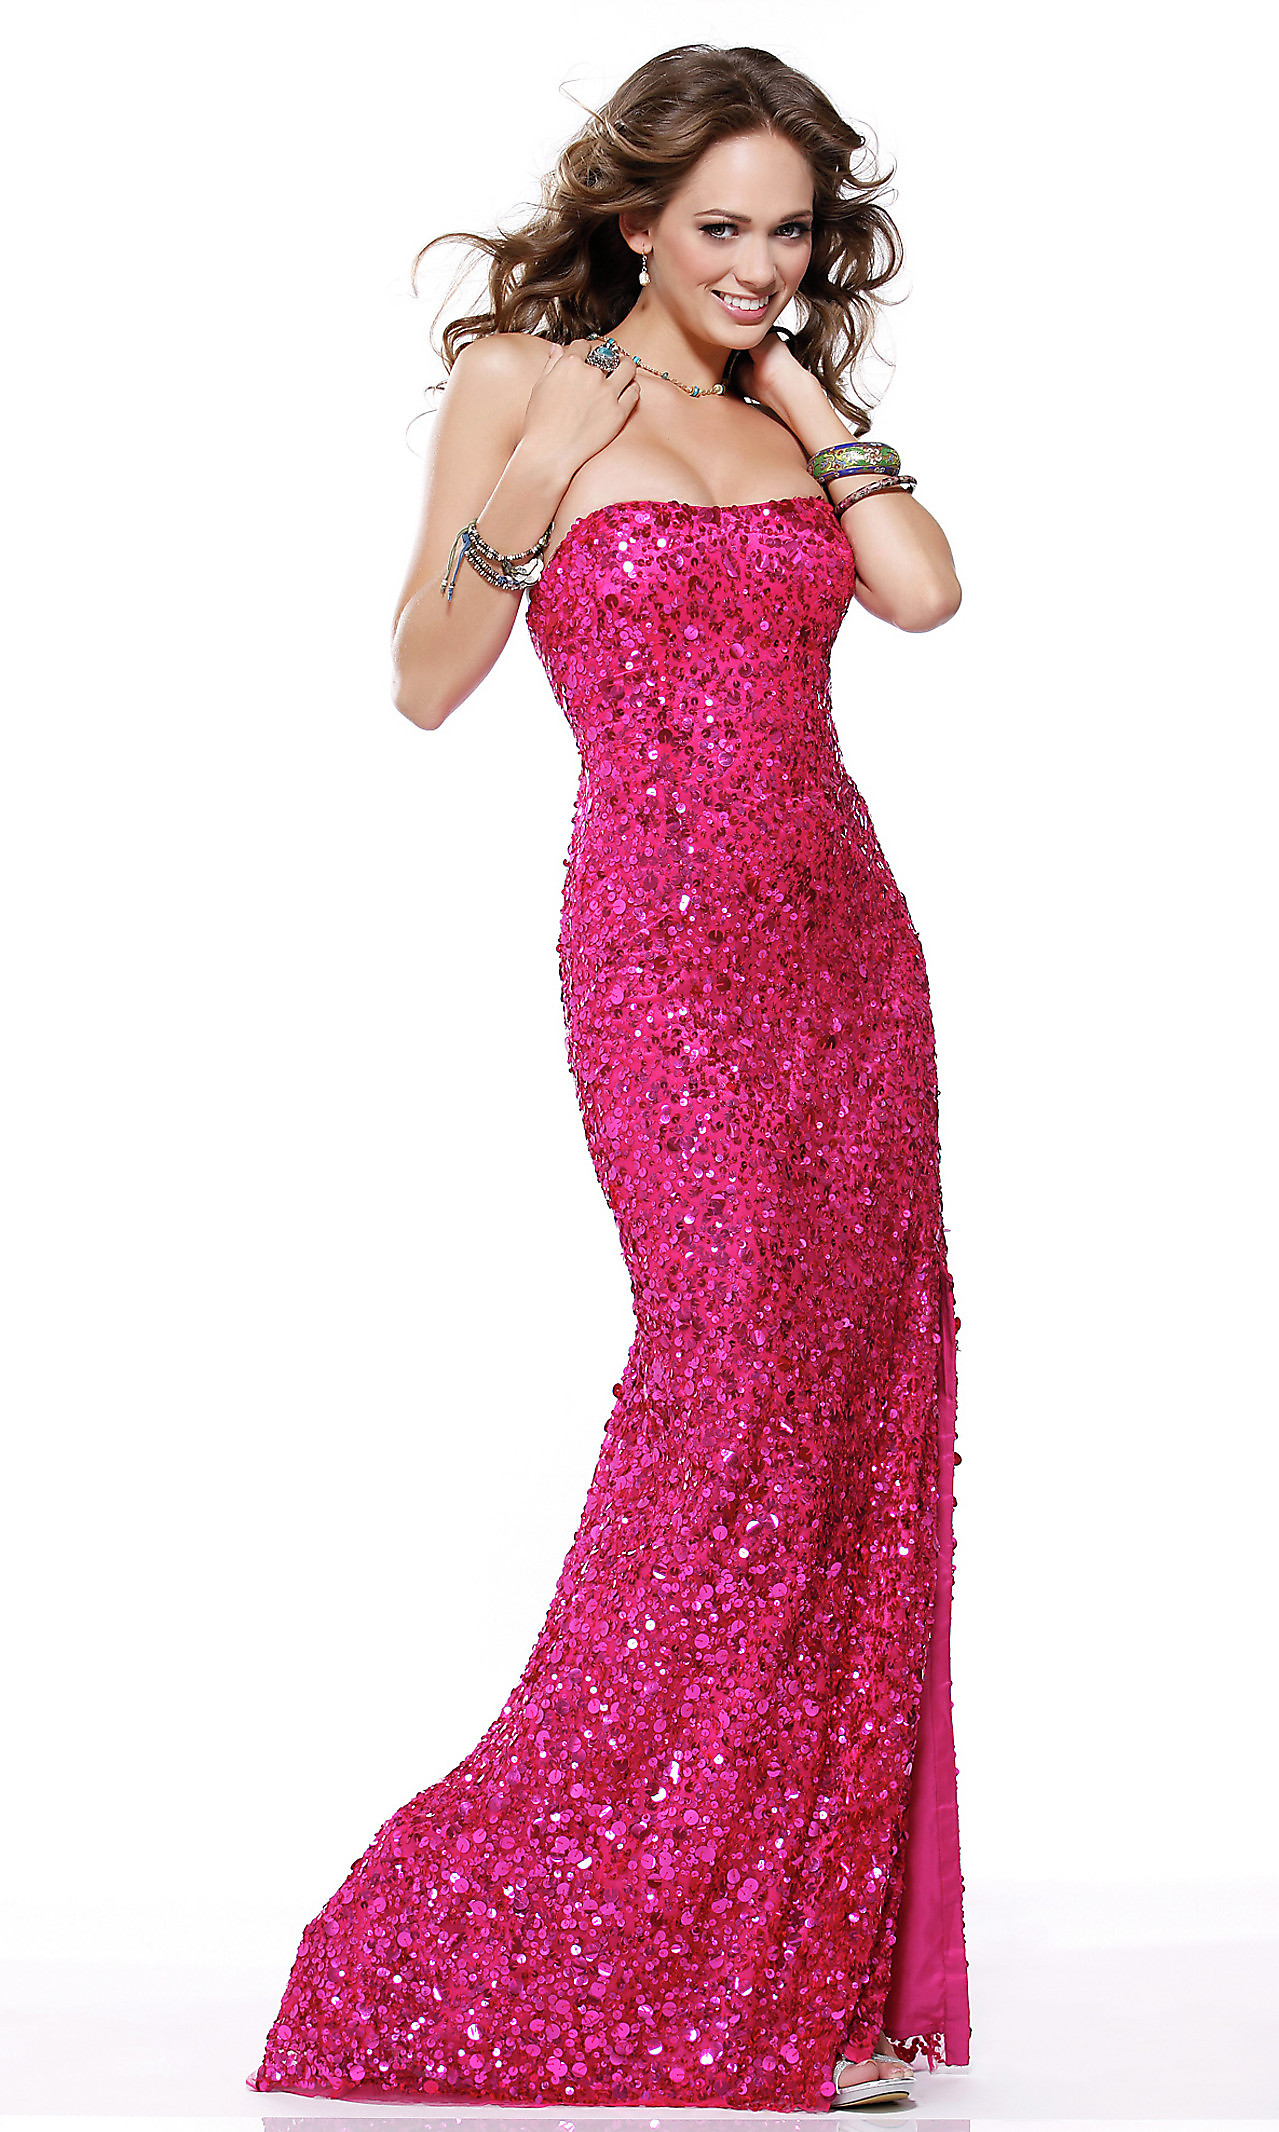 Pink Sequin Dress - Dressed Up Girl